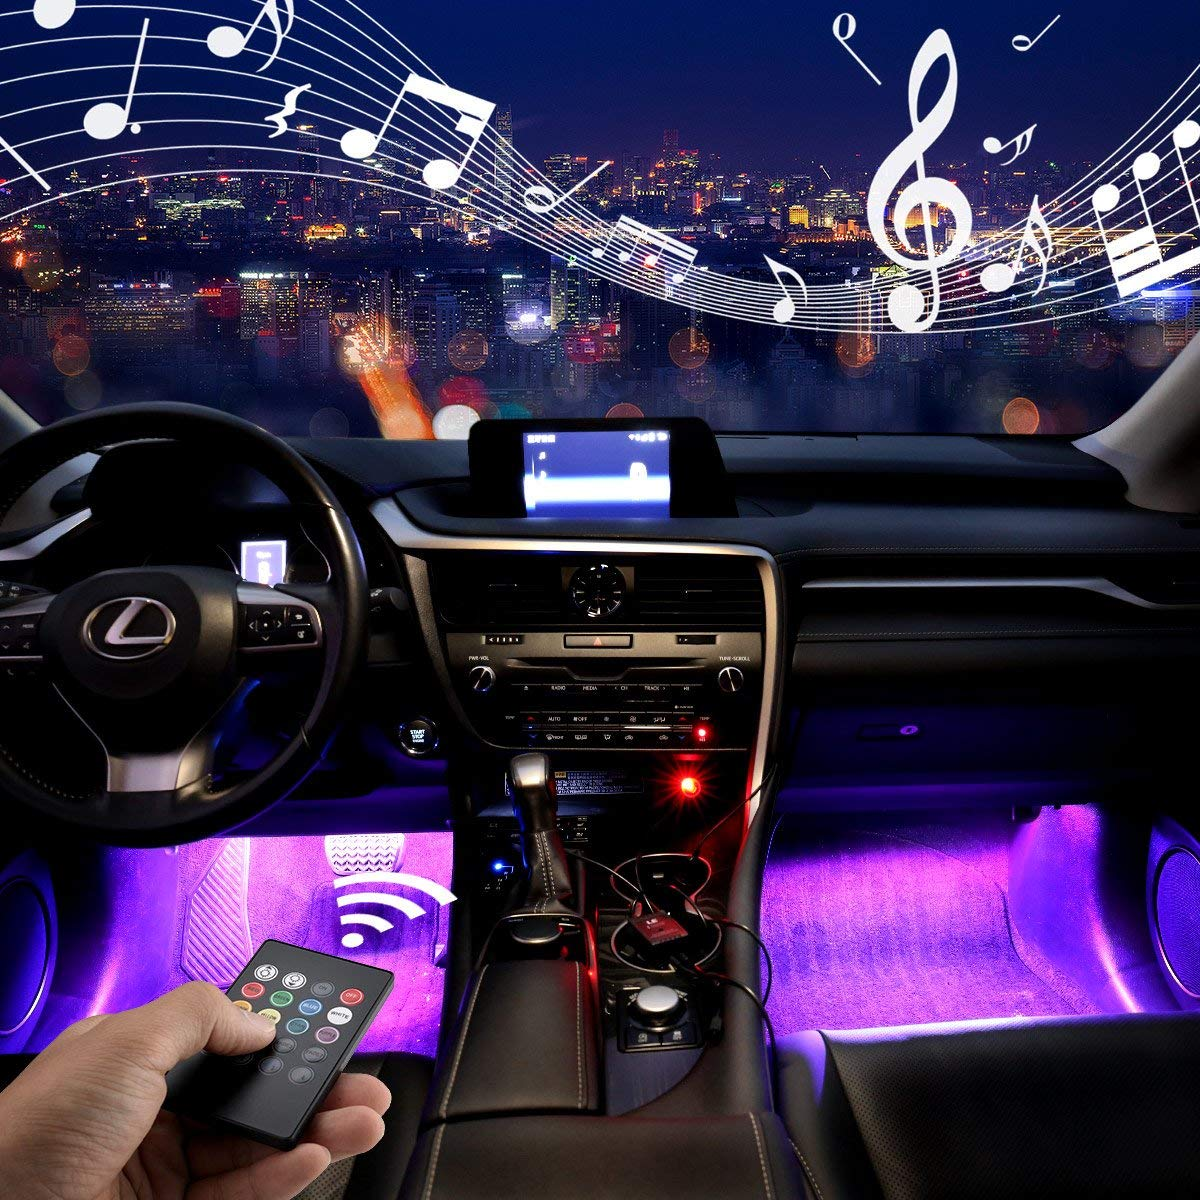 Car Charger Dongtai Car LED Strip Light DC 12V 4PCS 48 LED Multicolor Music Car Lights Interior Under Dash Lighting Kit with Sound Active Function and Wireless Remote Control